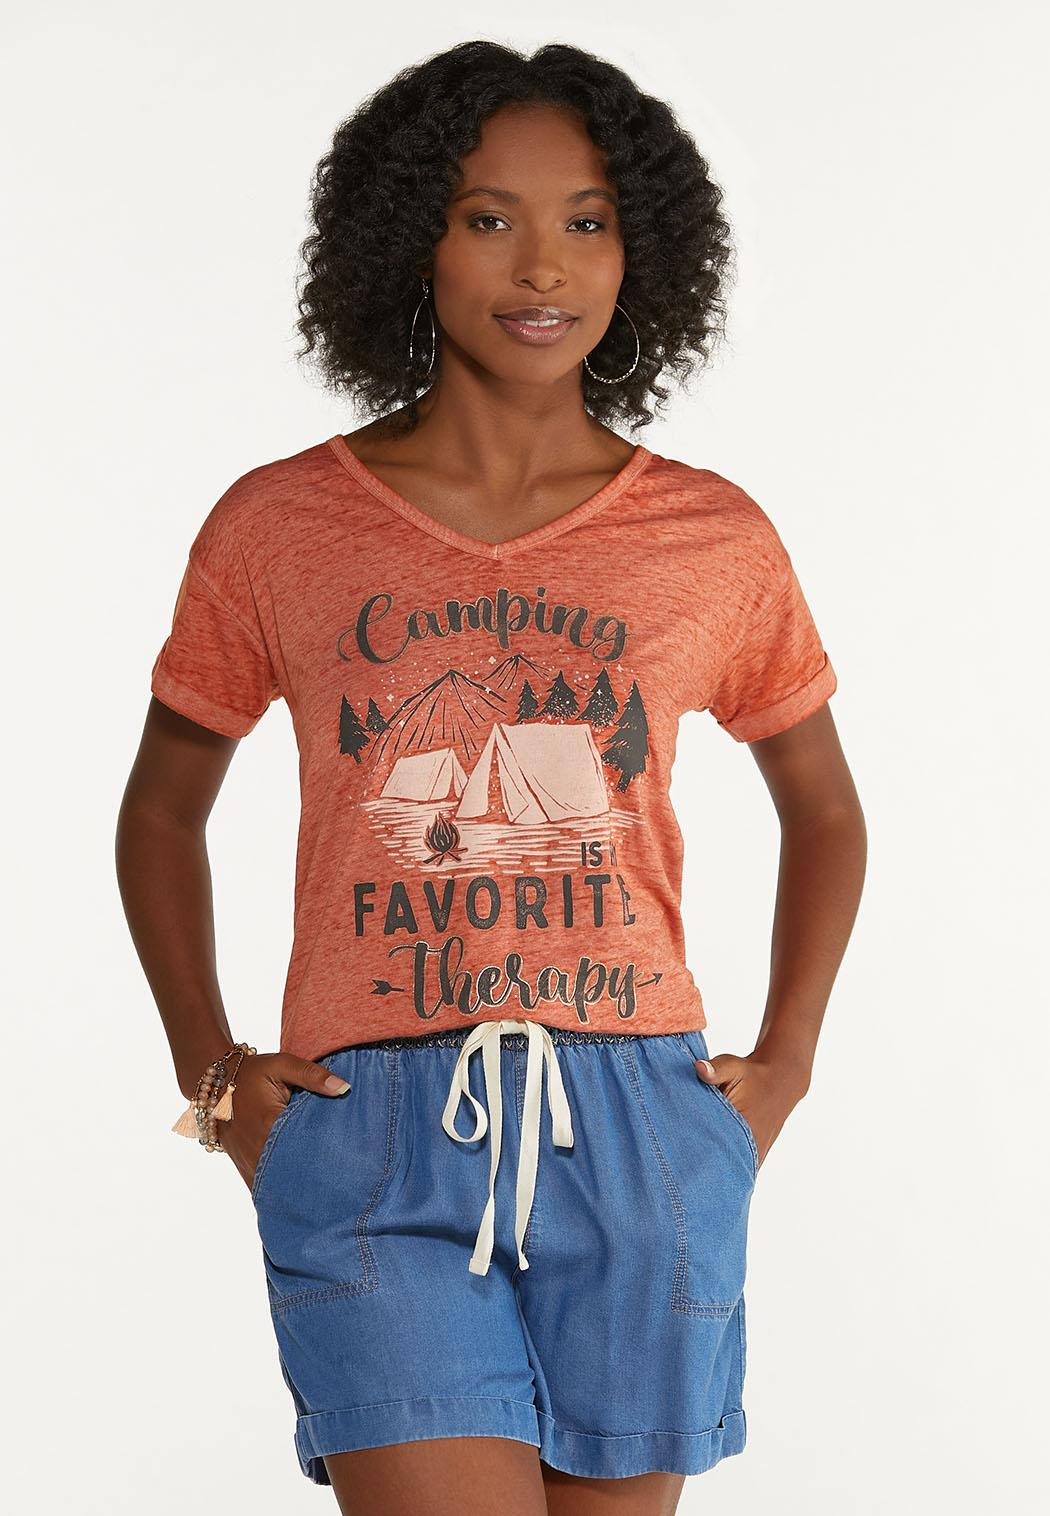 Camping Therapy Tee (Item #44663961)